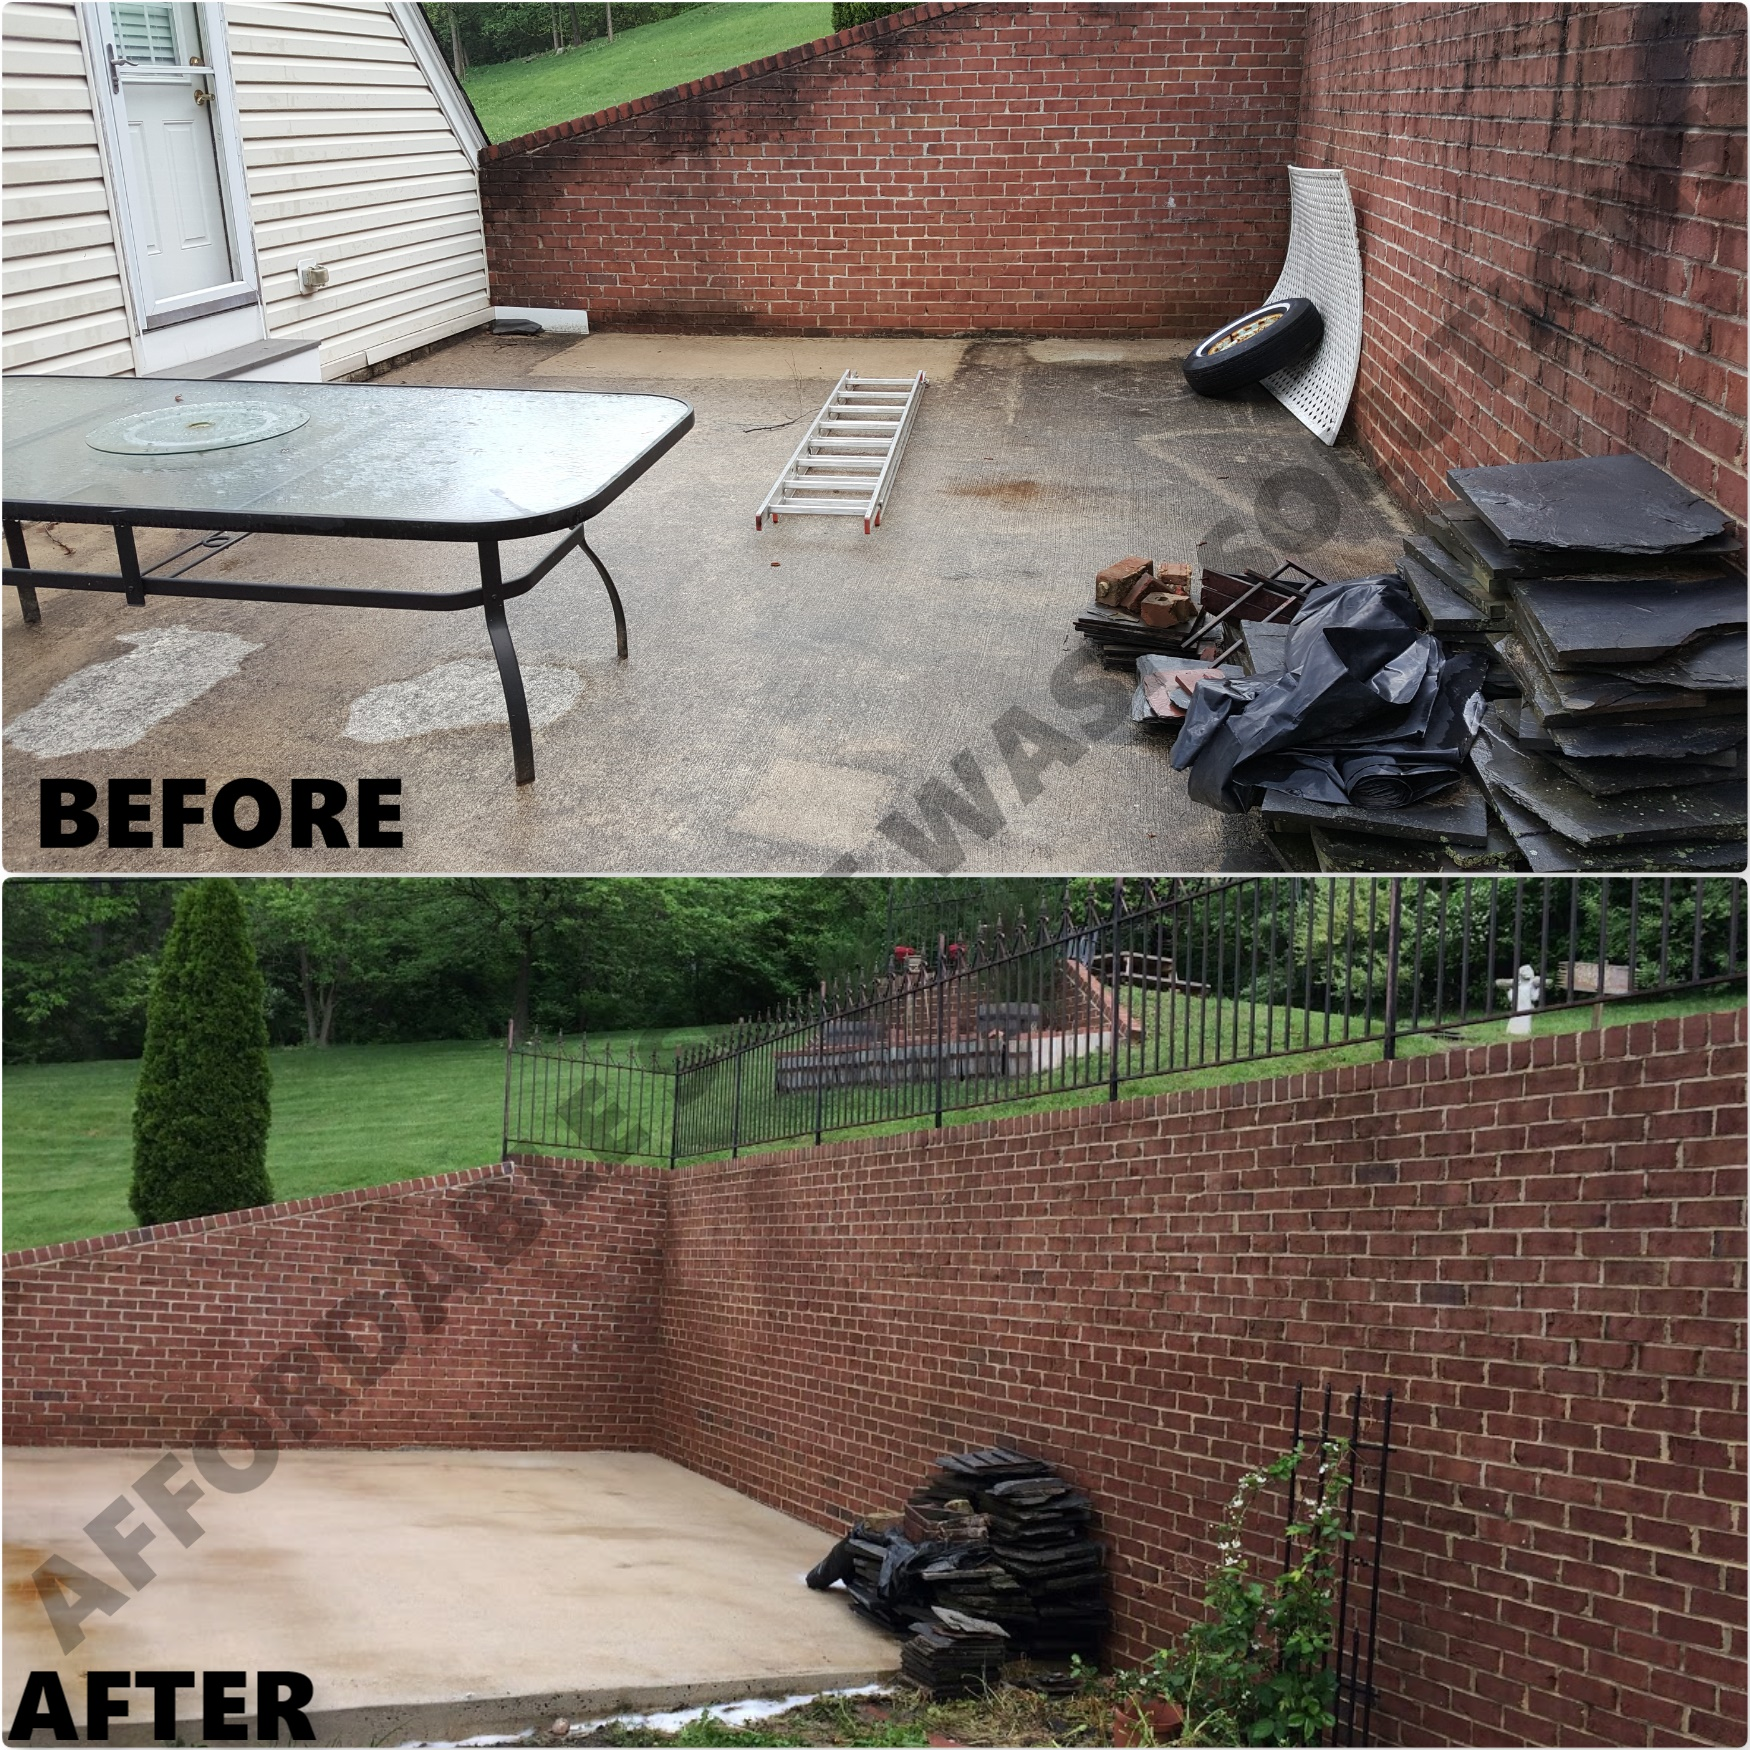 BACK PATIO BEFORE AND AFTER.jpg